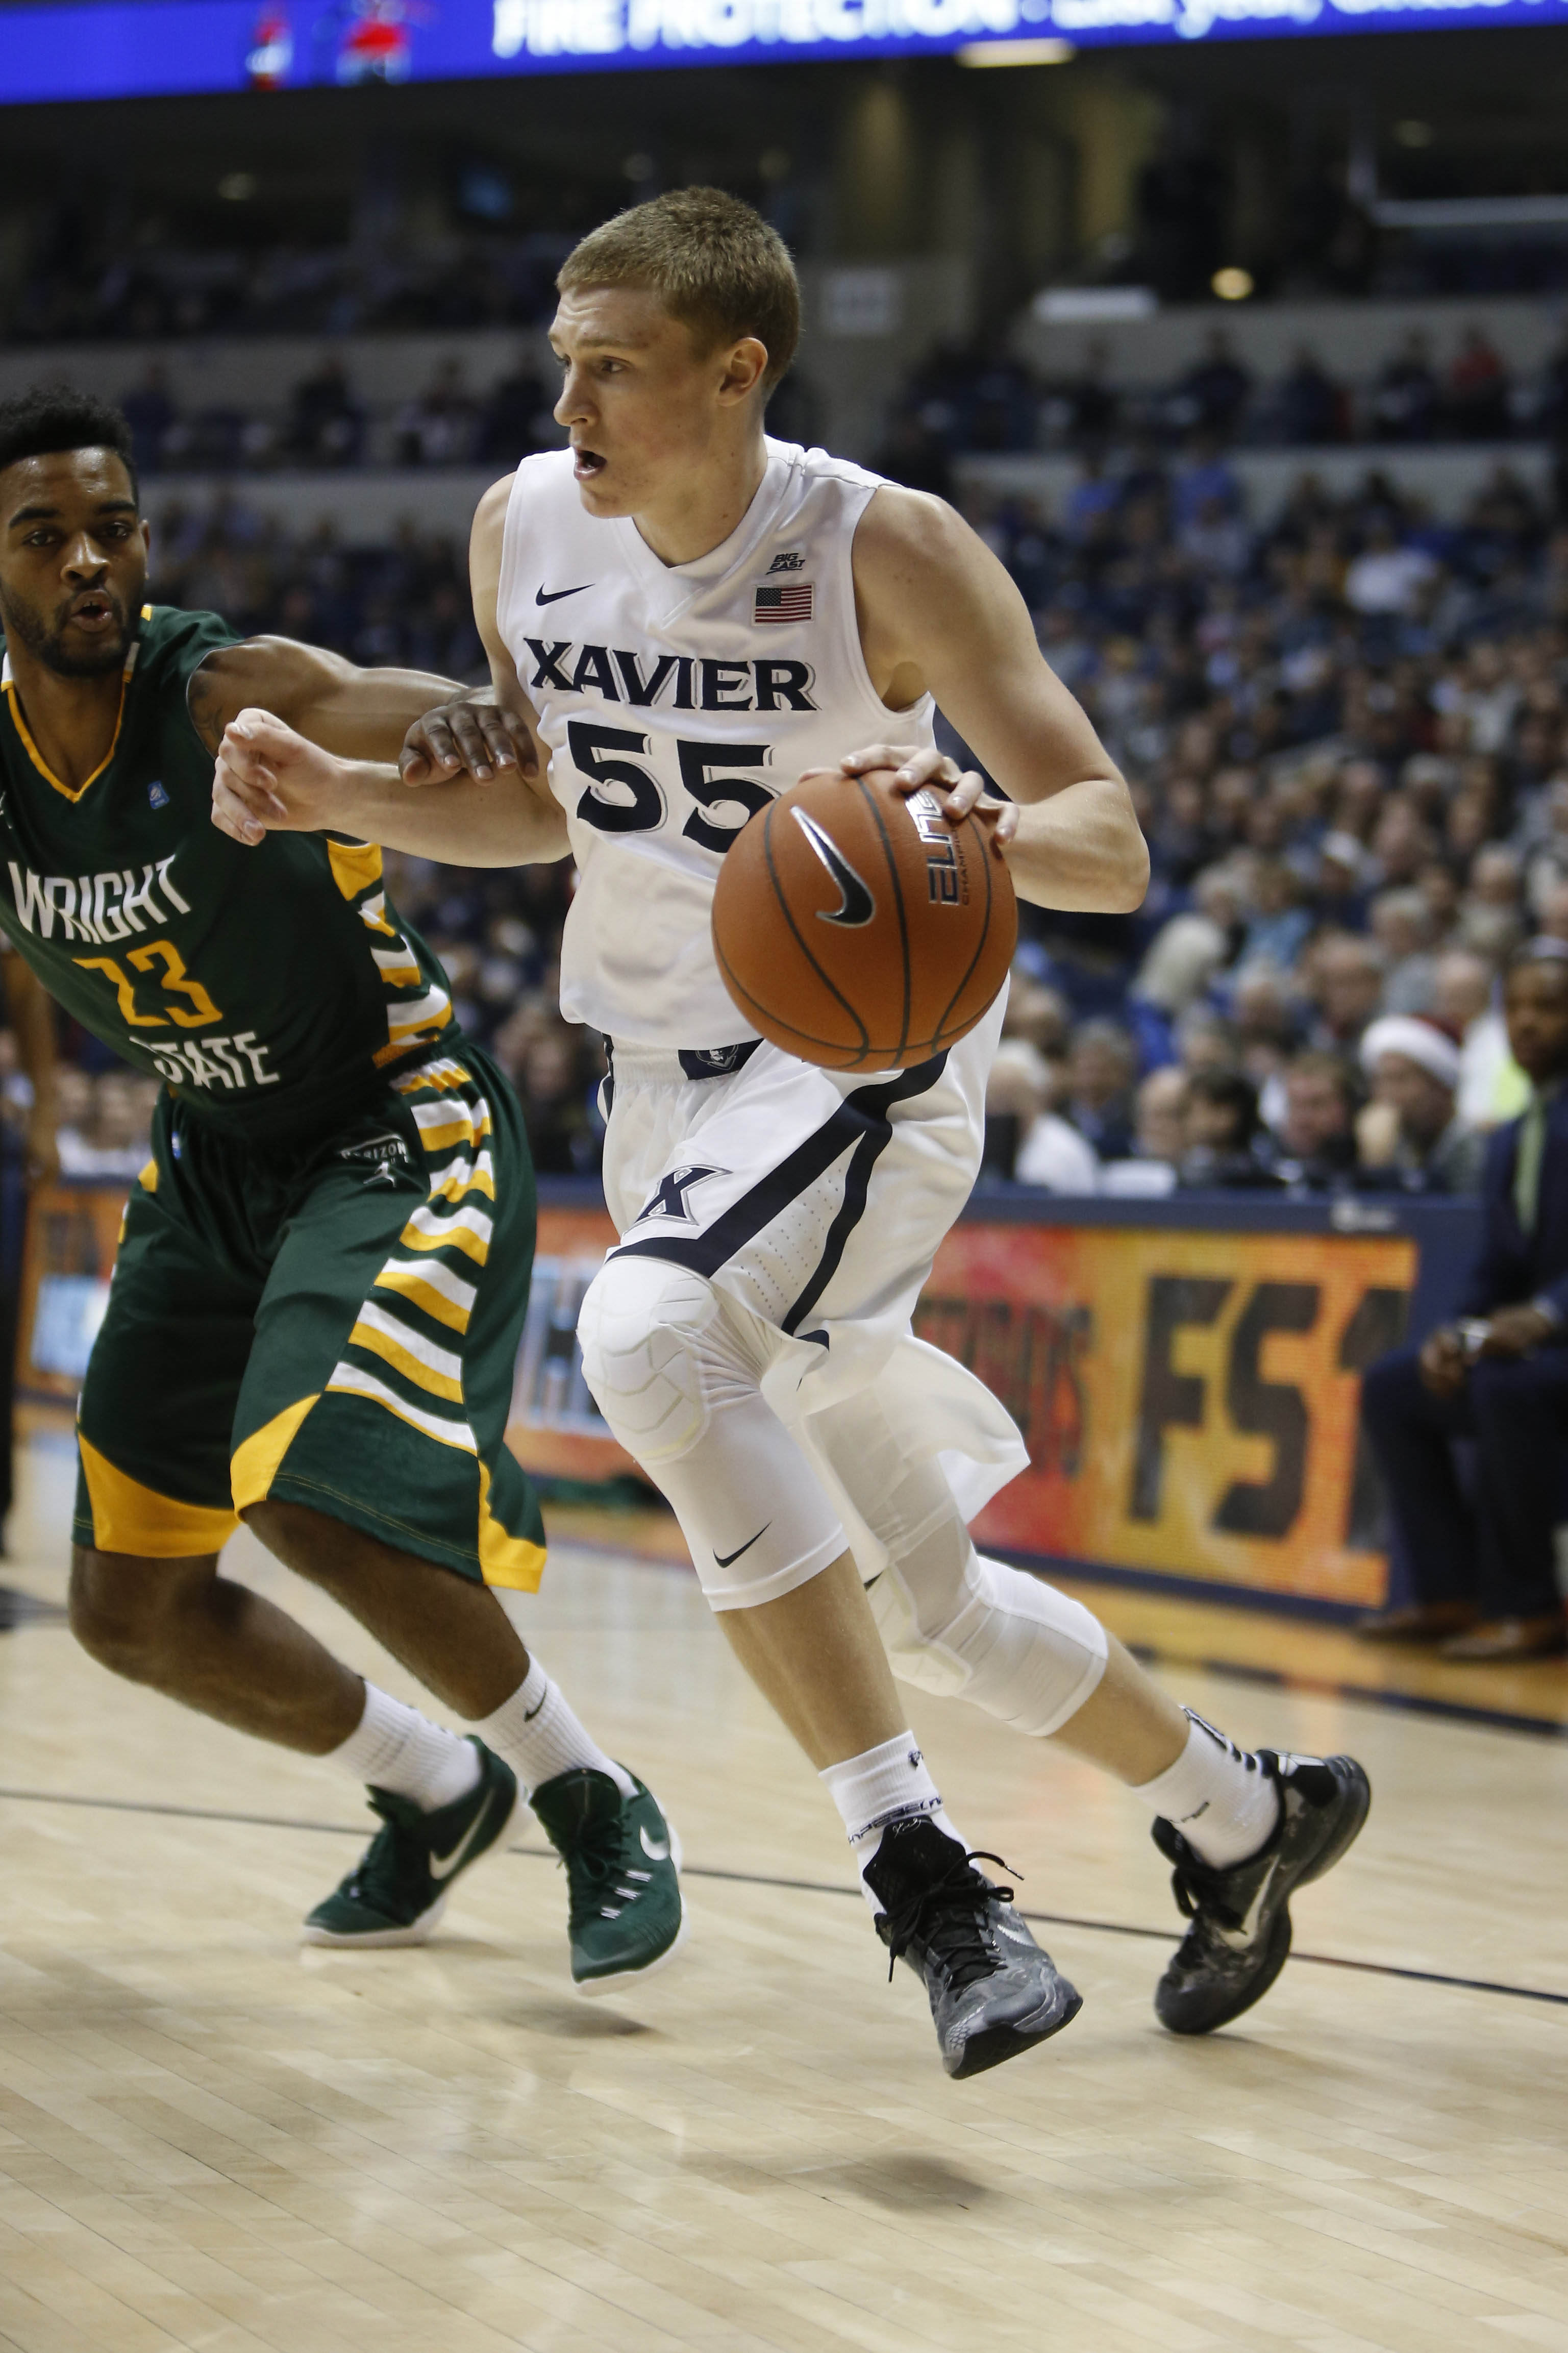 J.P Macura and Xavier cruised to an easy victory over Wright State